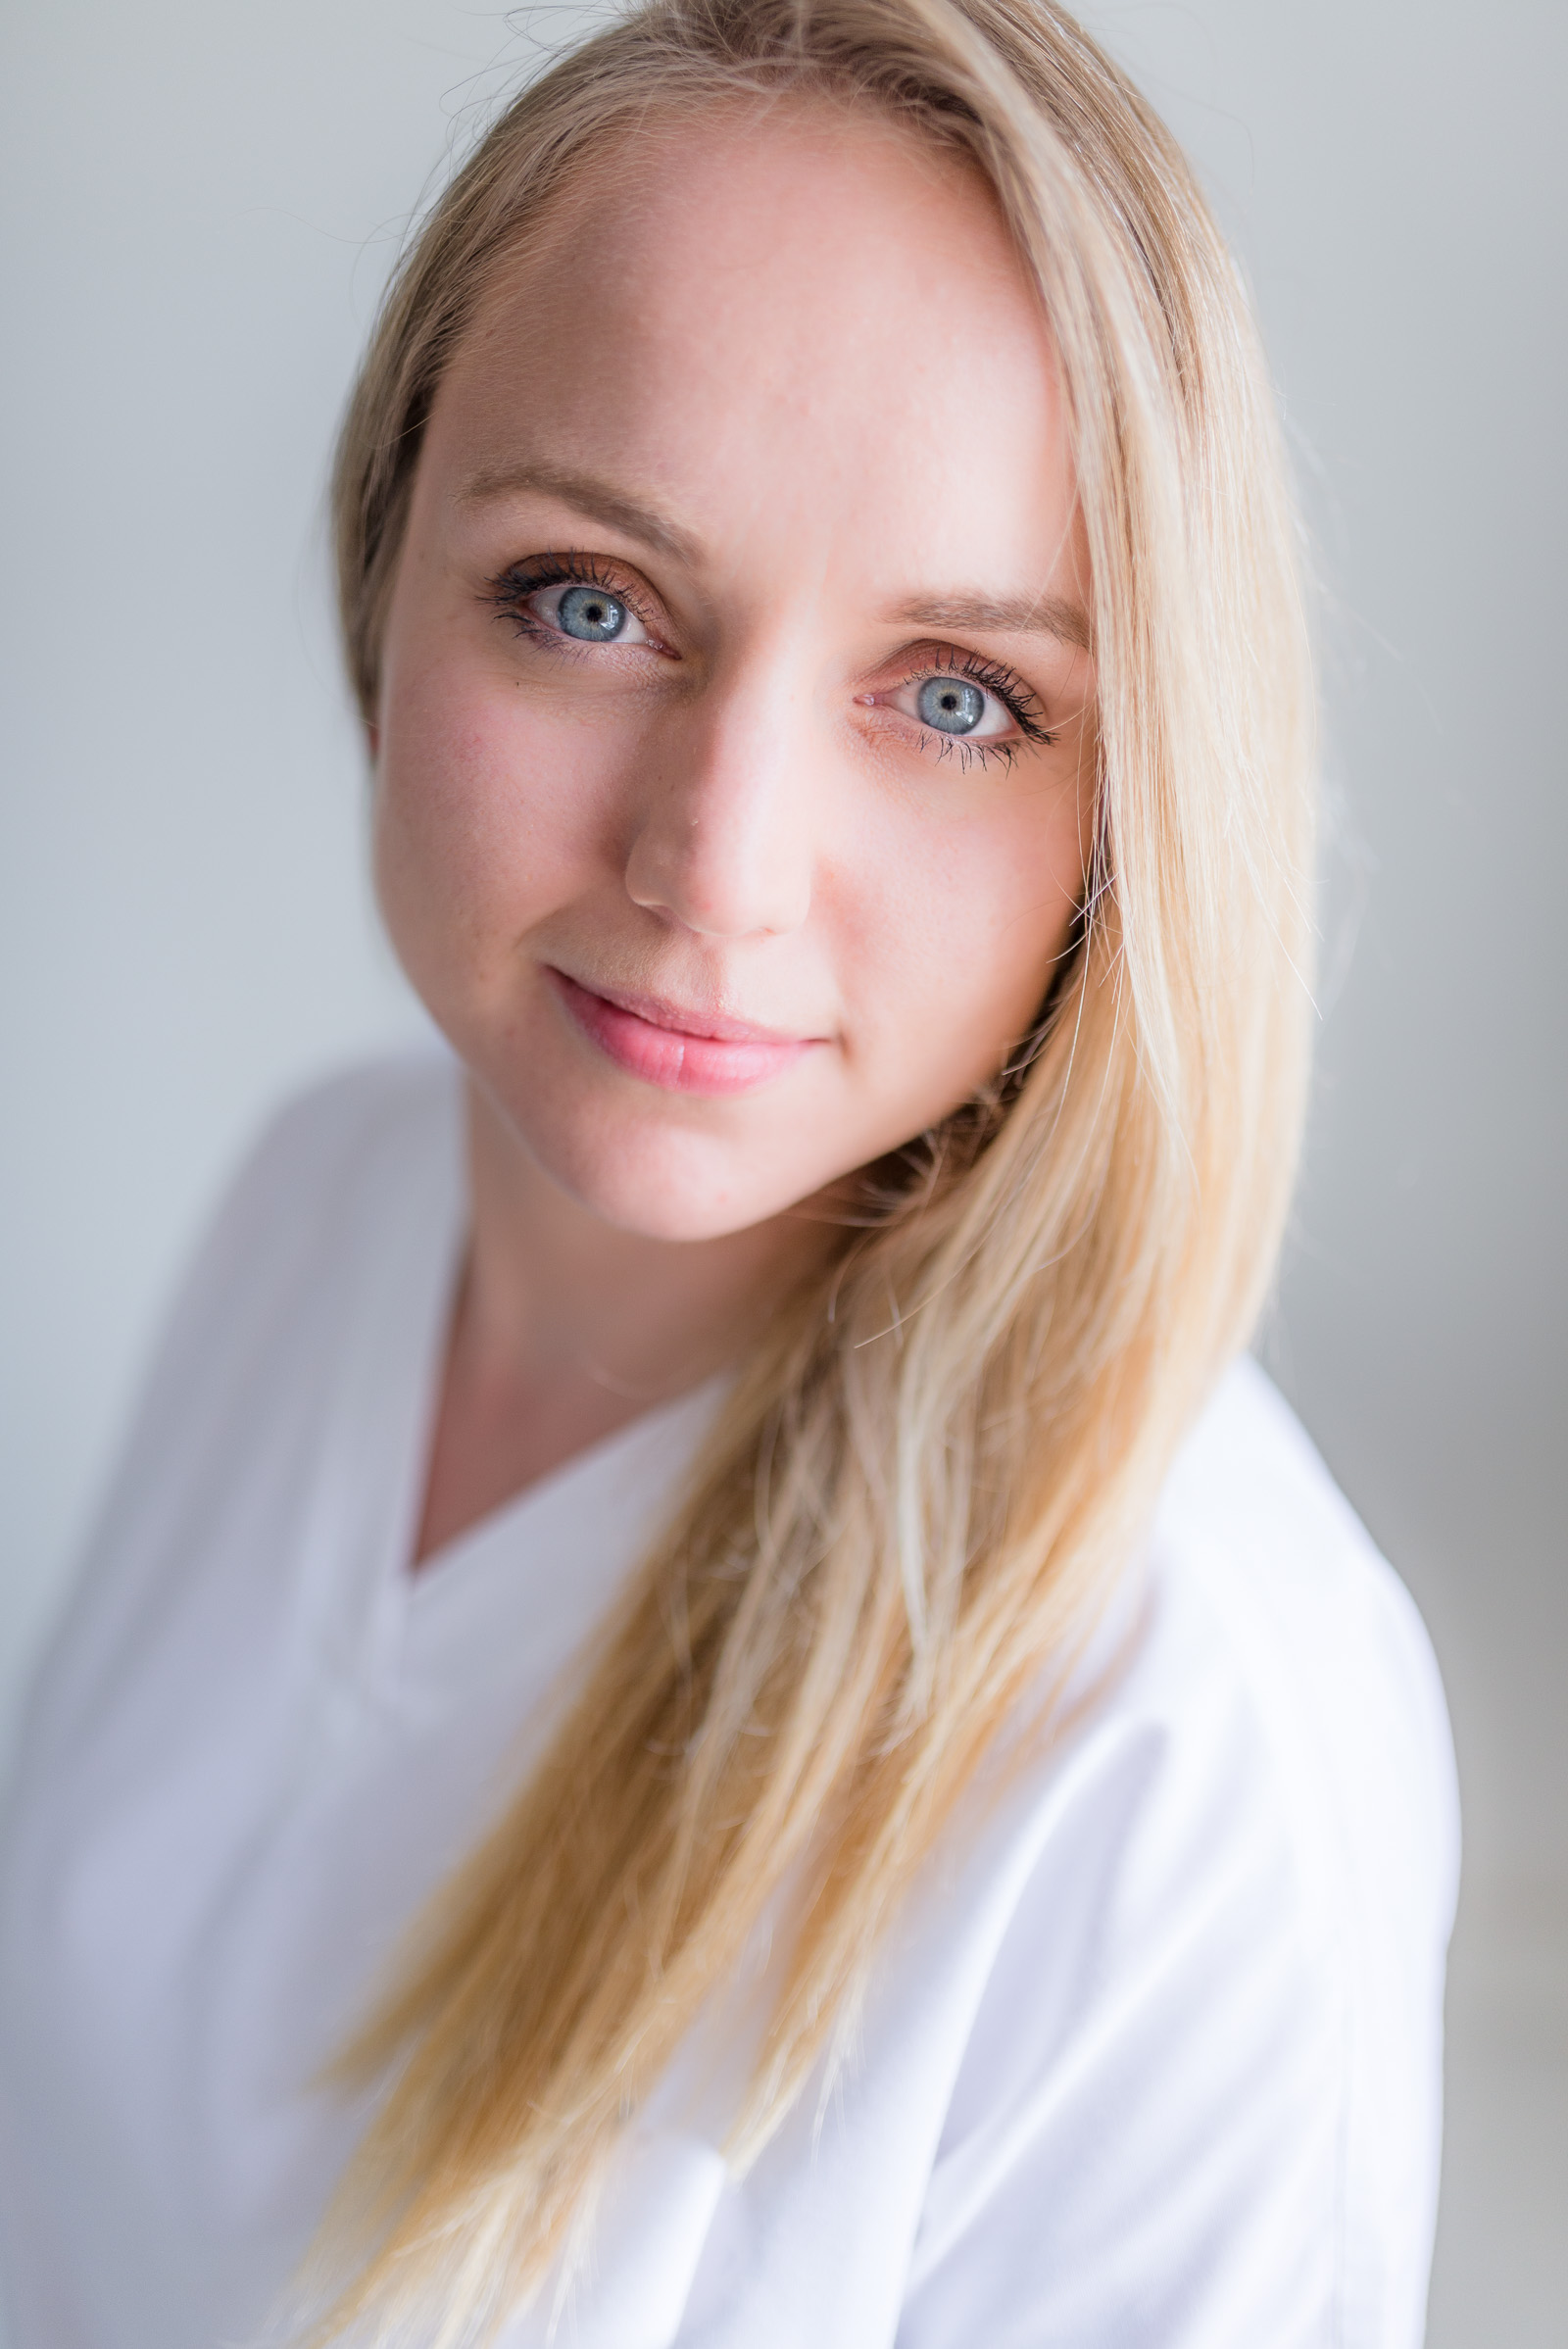 Headshots and portraits for businesses and corporate by Personal Brand Photographer Magdalena Smolarska based in London, Brighton, UK